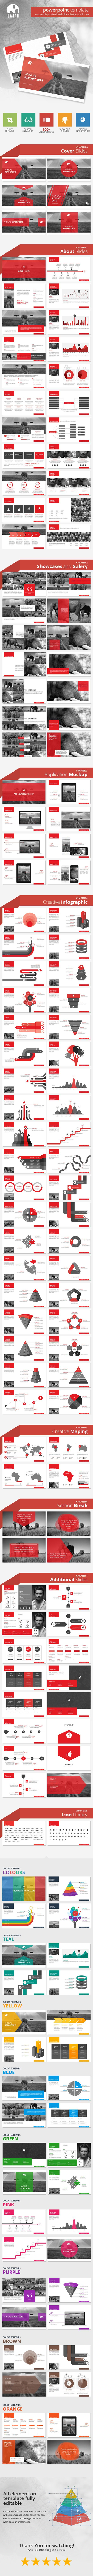 Gajah - Annual Report Powerpoint Template (Powerpoint Templates)  preview